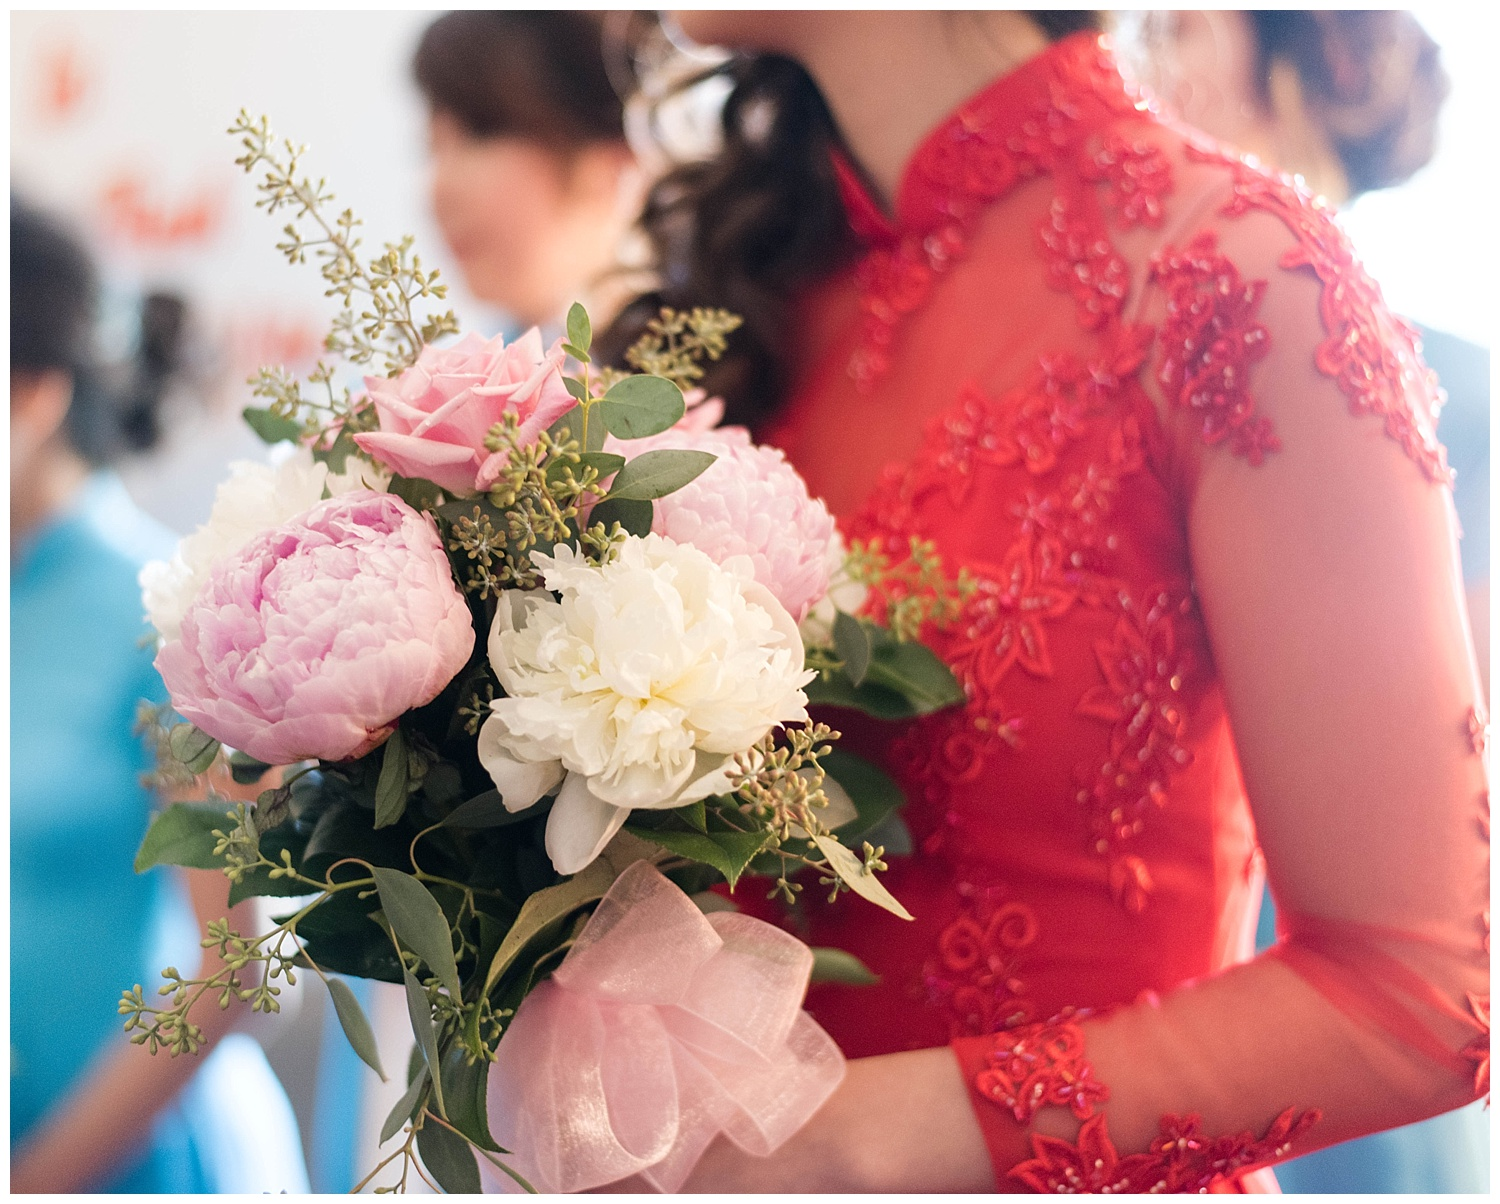 Weddings_by_Raisa_Photography_Saint_Mary_Magdalen_New_Vintage_Grand_Rapids_Michigan_Wedding_Photographer_0022.jpg